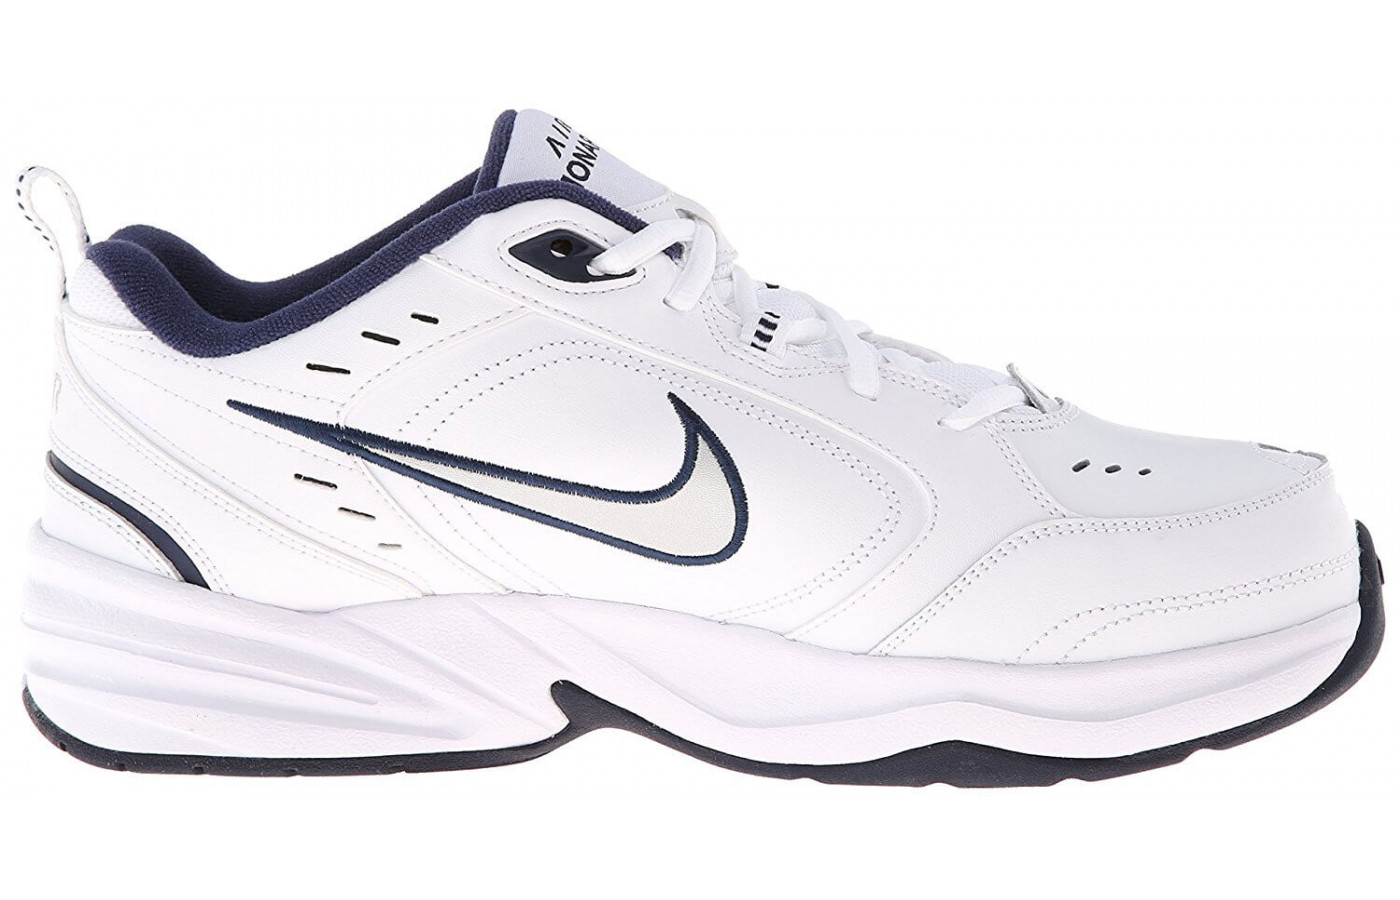 Nike Air Monarch IV Right